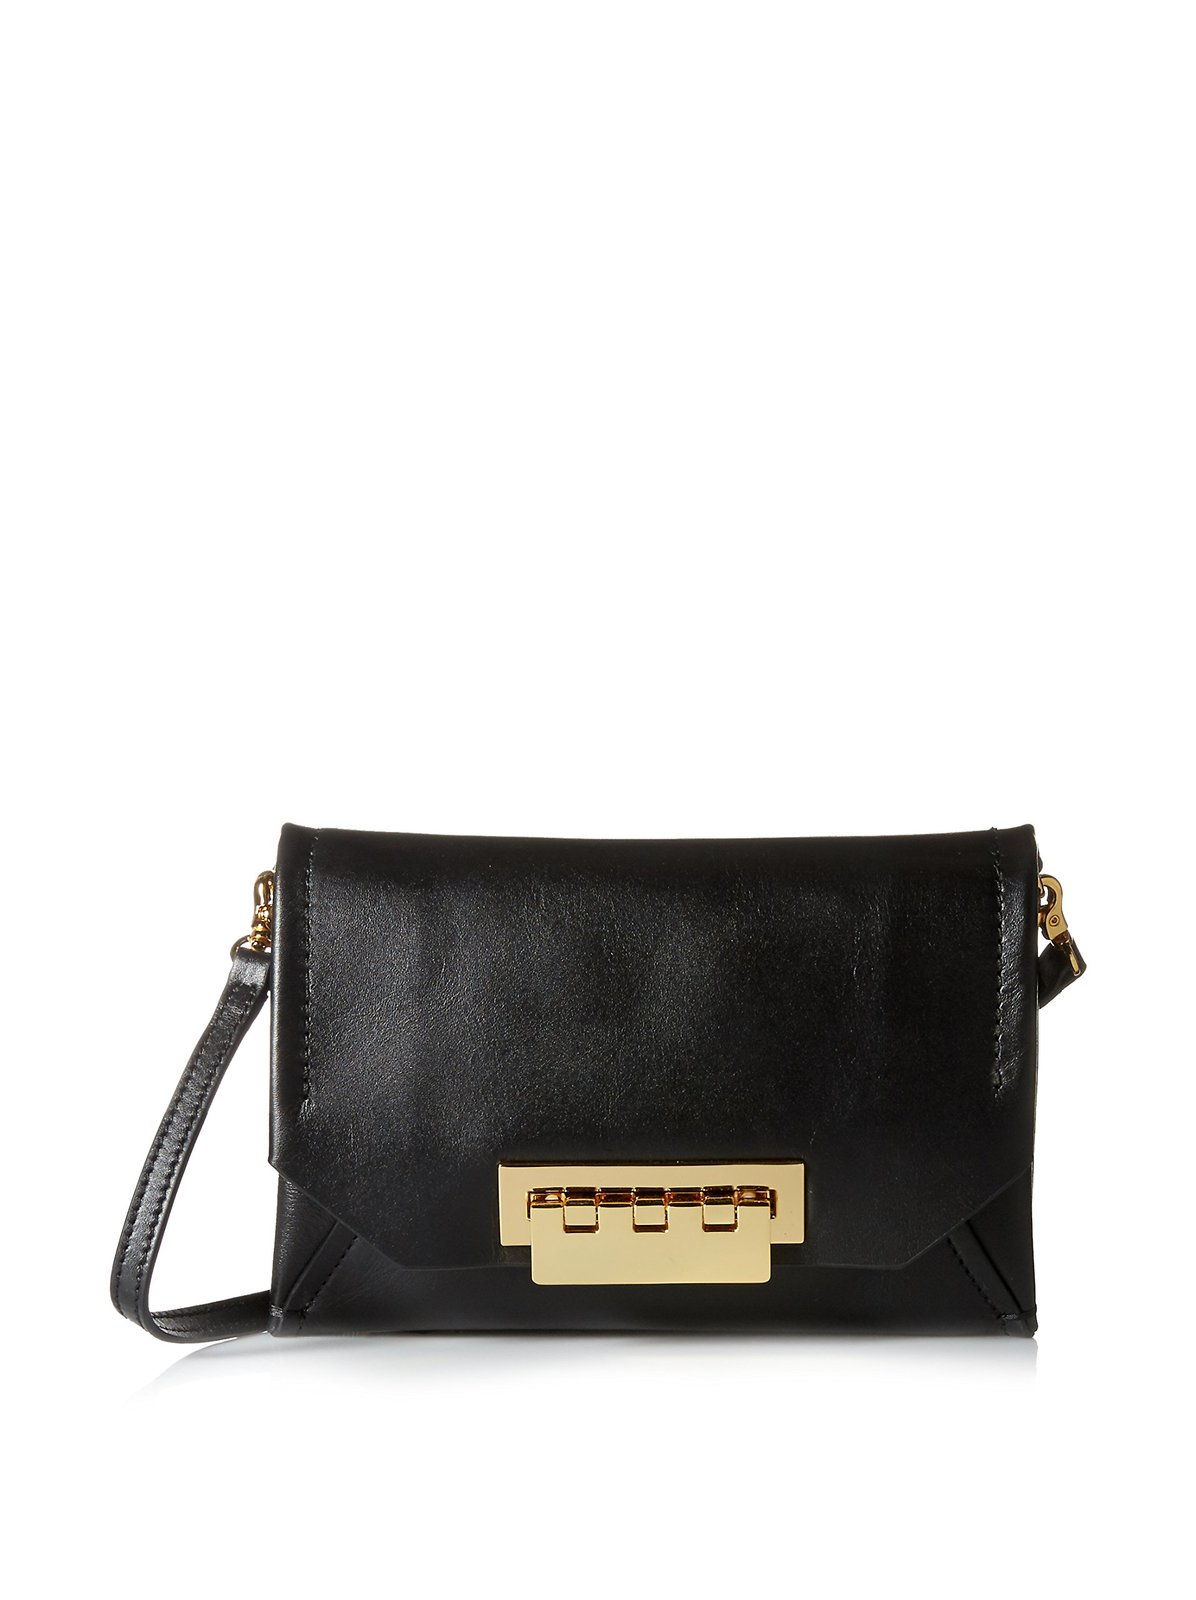 ZAC Zac Posen Women's Eartha Envelope Cross Body Bag, Black, One Size